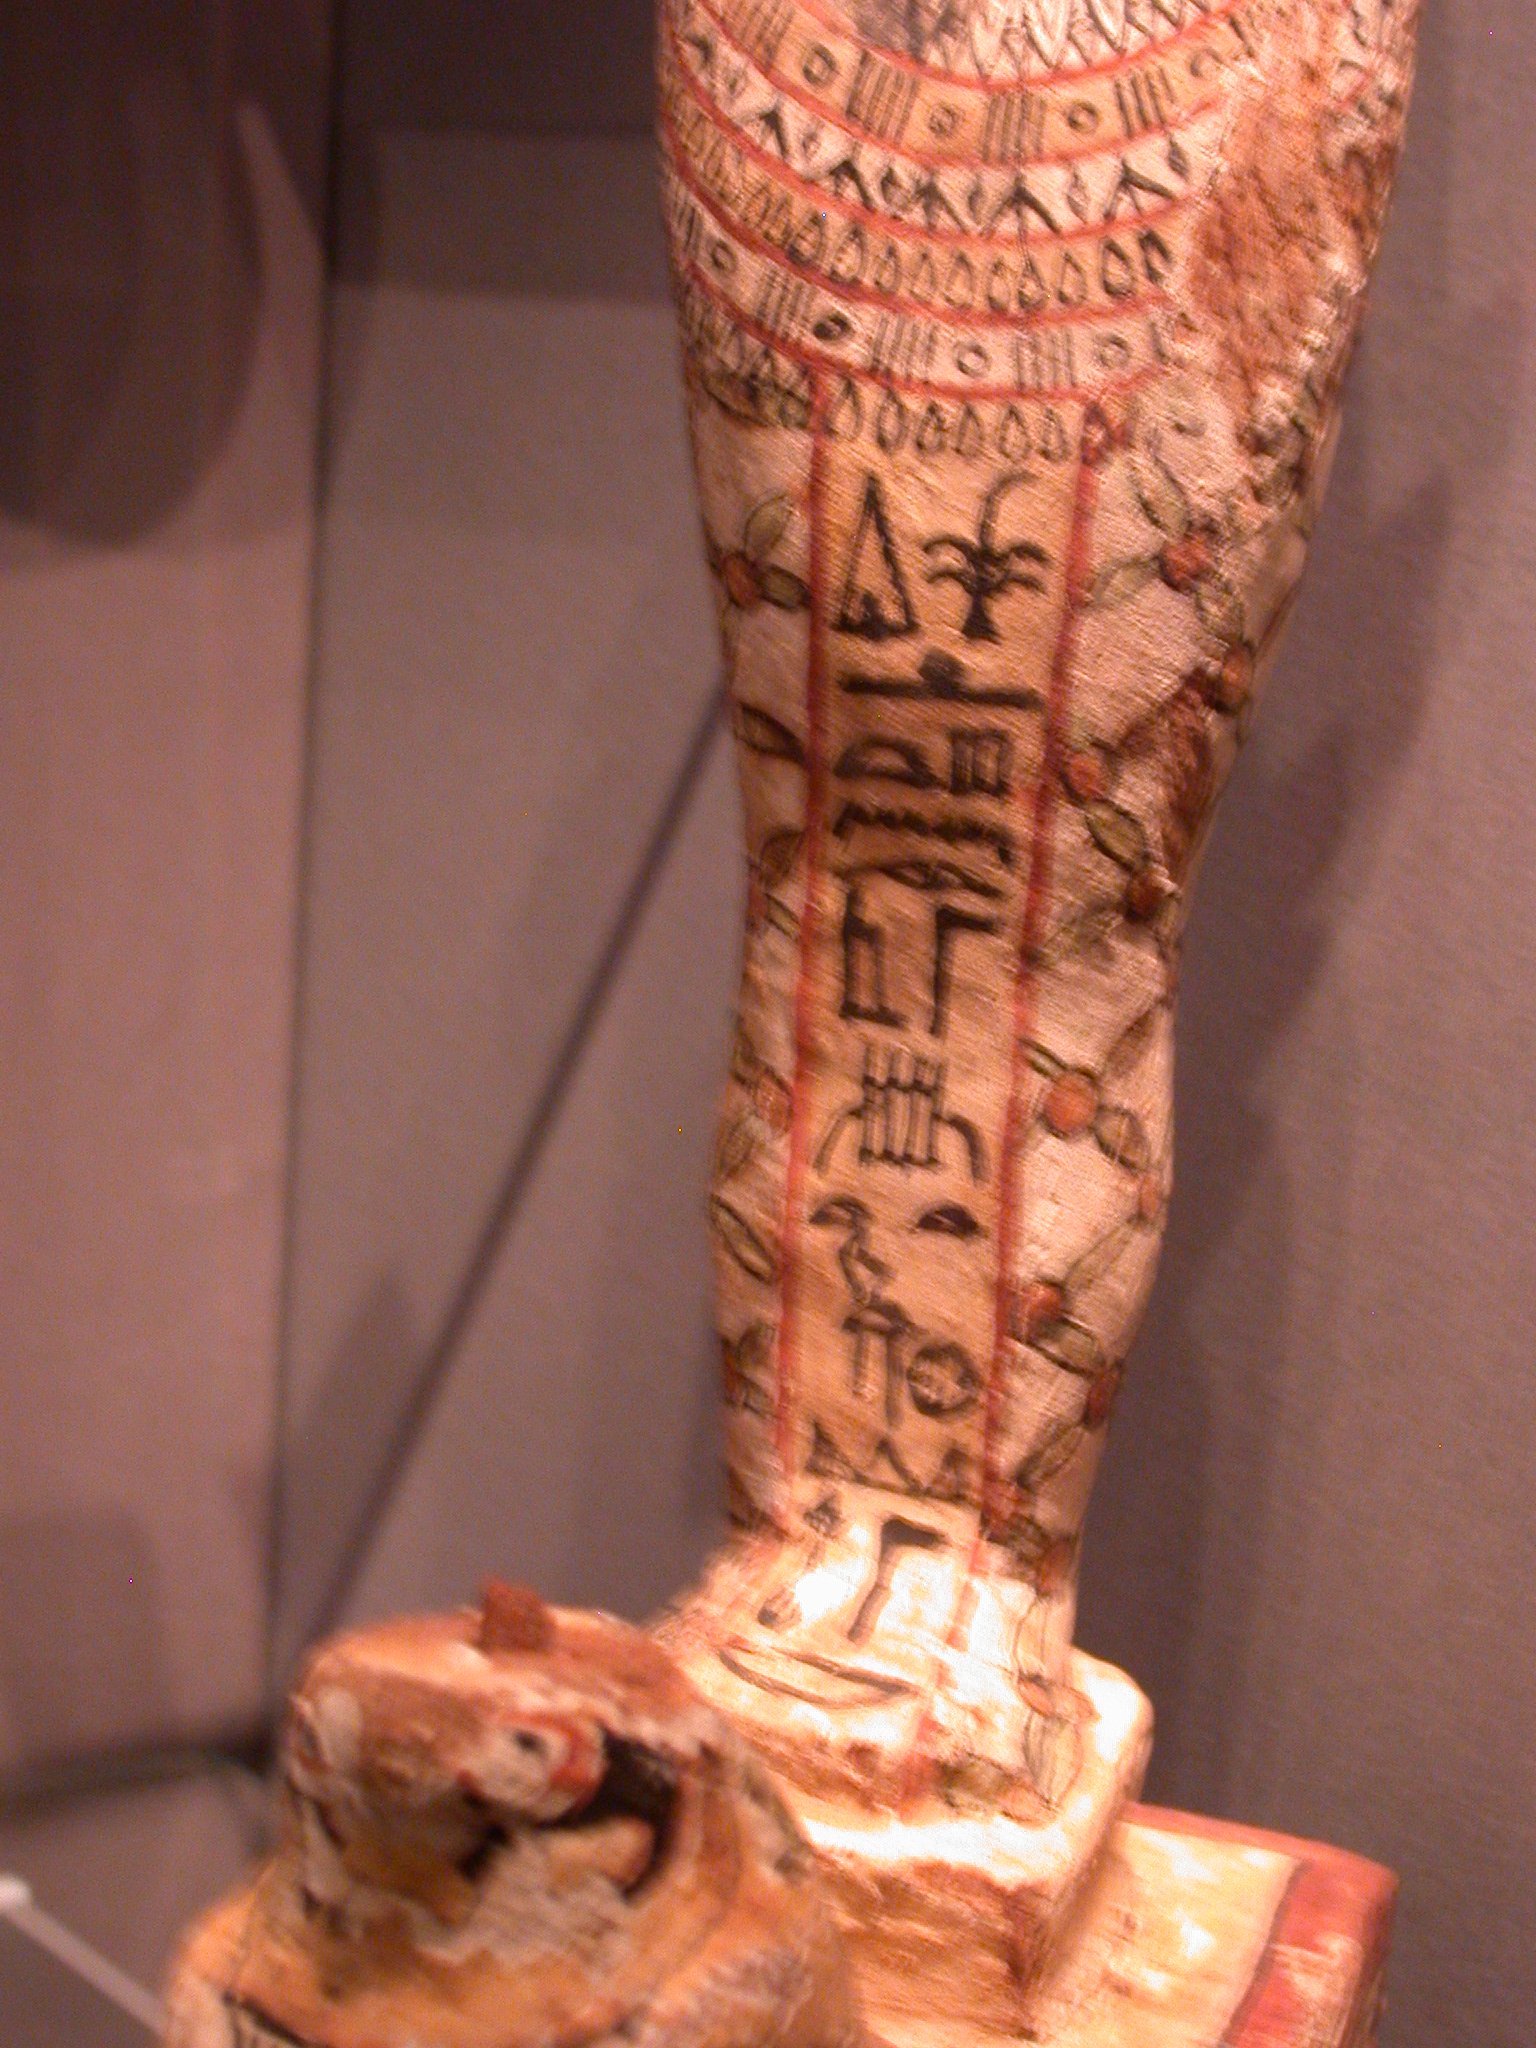 Wood Ptah-Sokar-Osiris Box Containing Papyrus Scroll, Late Period, 746-336 BCE, Egypt, Fitzwilliam Museum, Cambridge, England